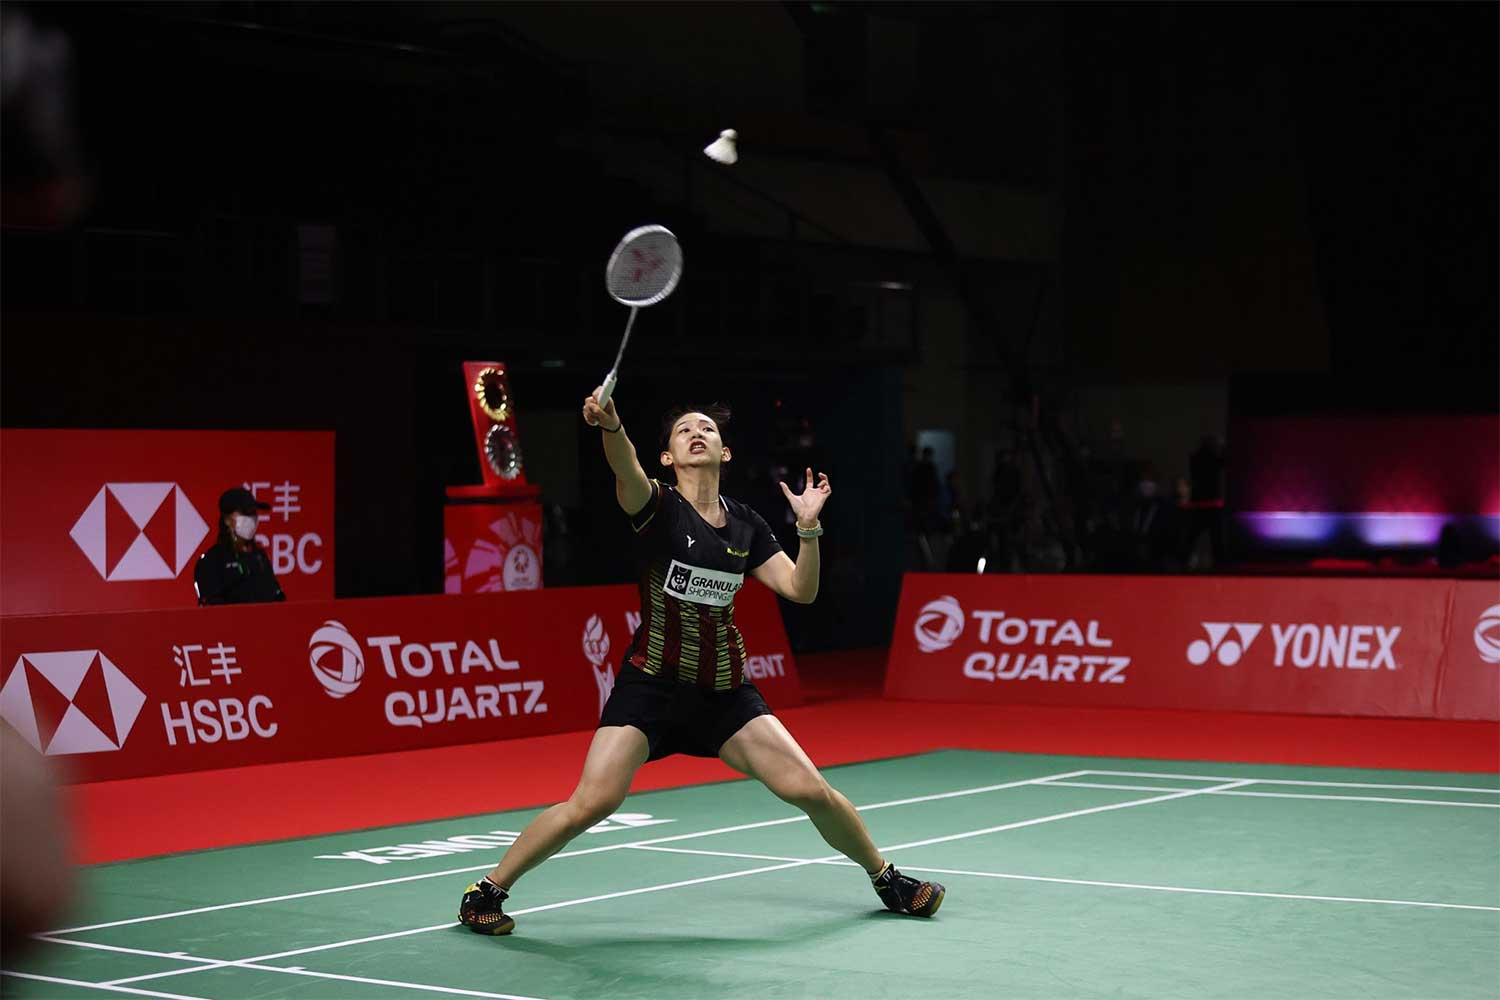 Thailand's Pornpawee Chochuwong plays a shot in her semi-final match against Carolina Marin on Saturday at Impact Arena. (Badminton Association of Thailand via AFP)